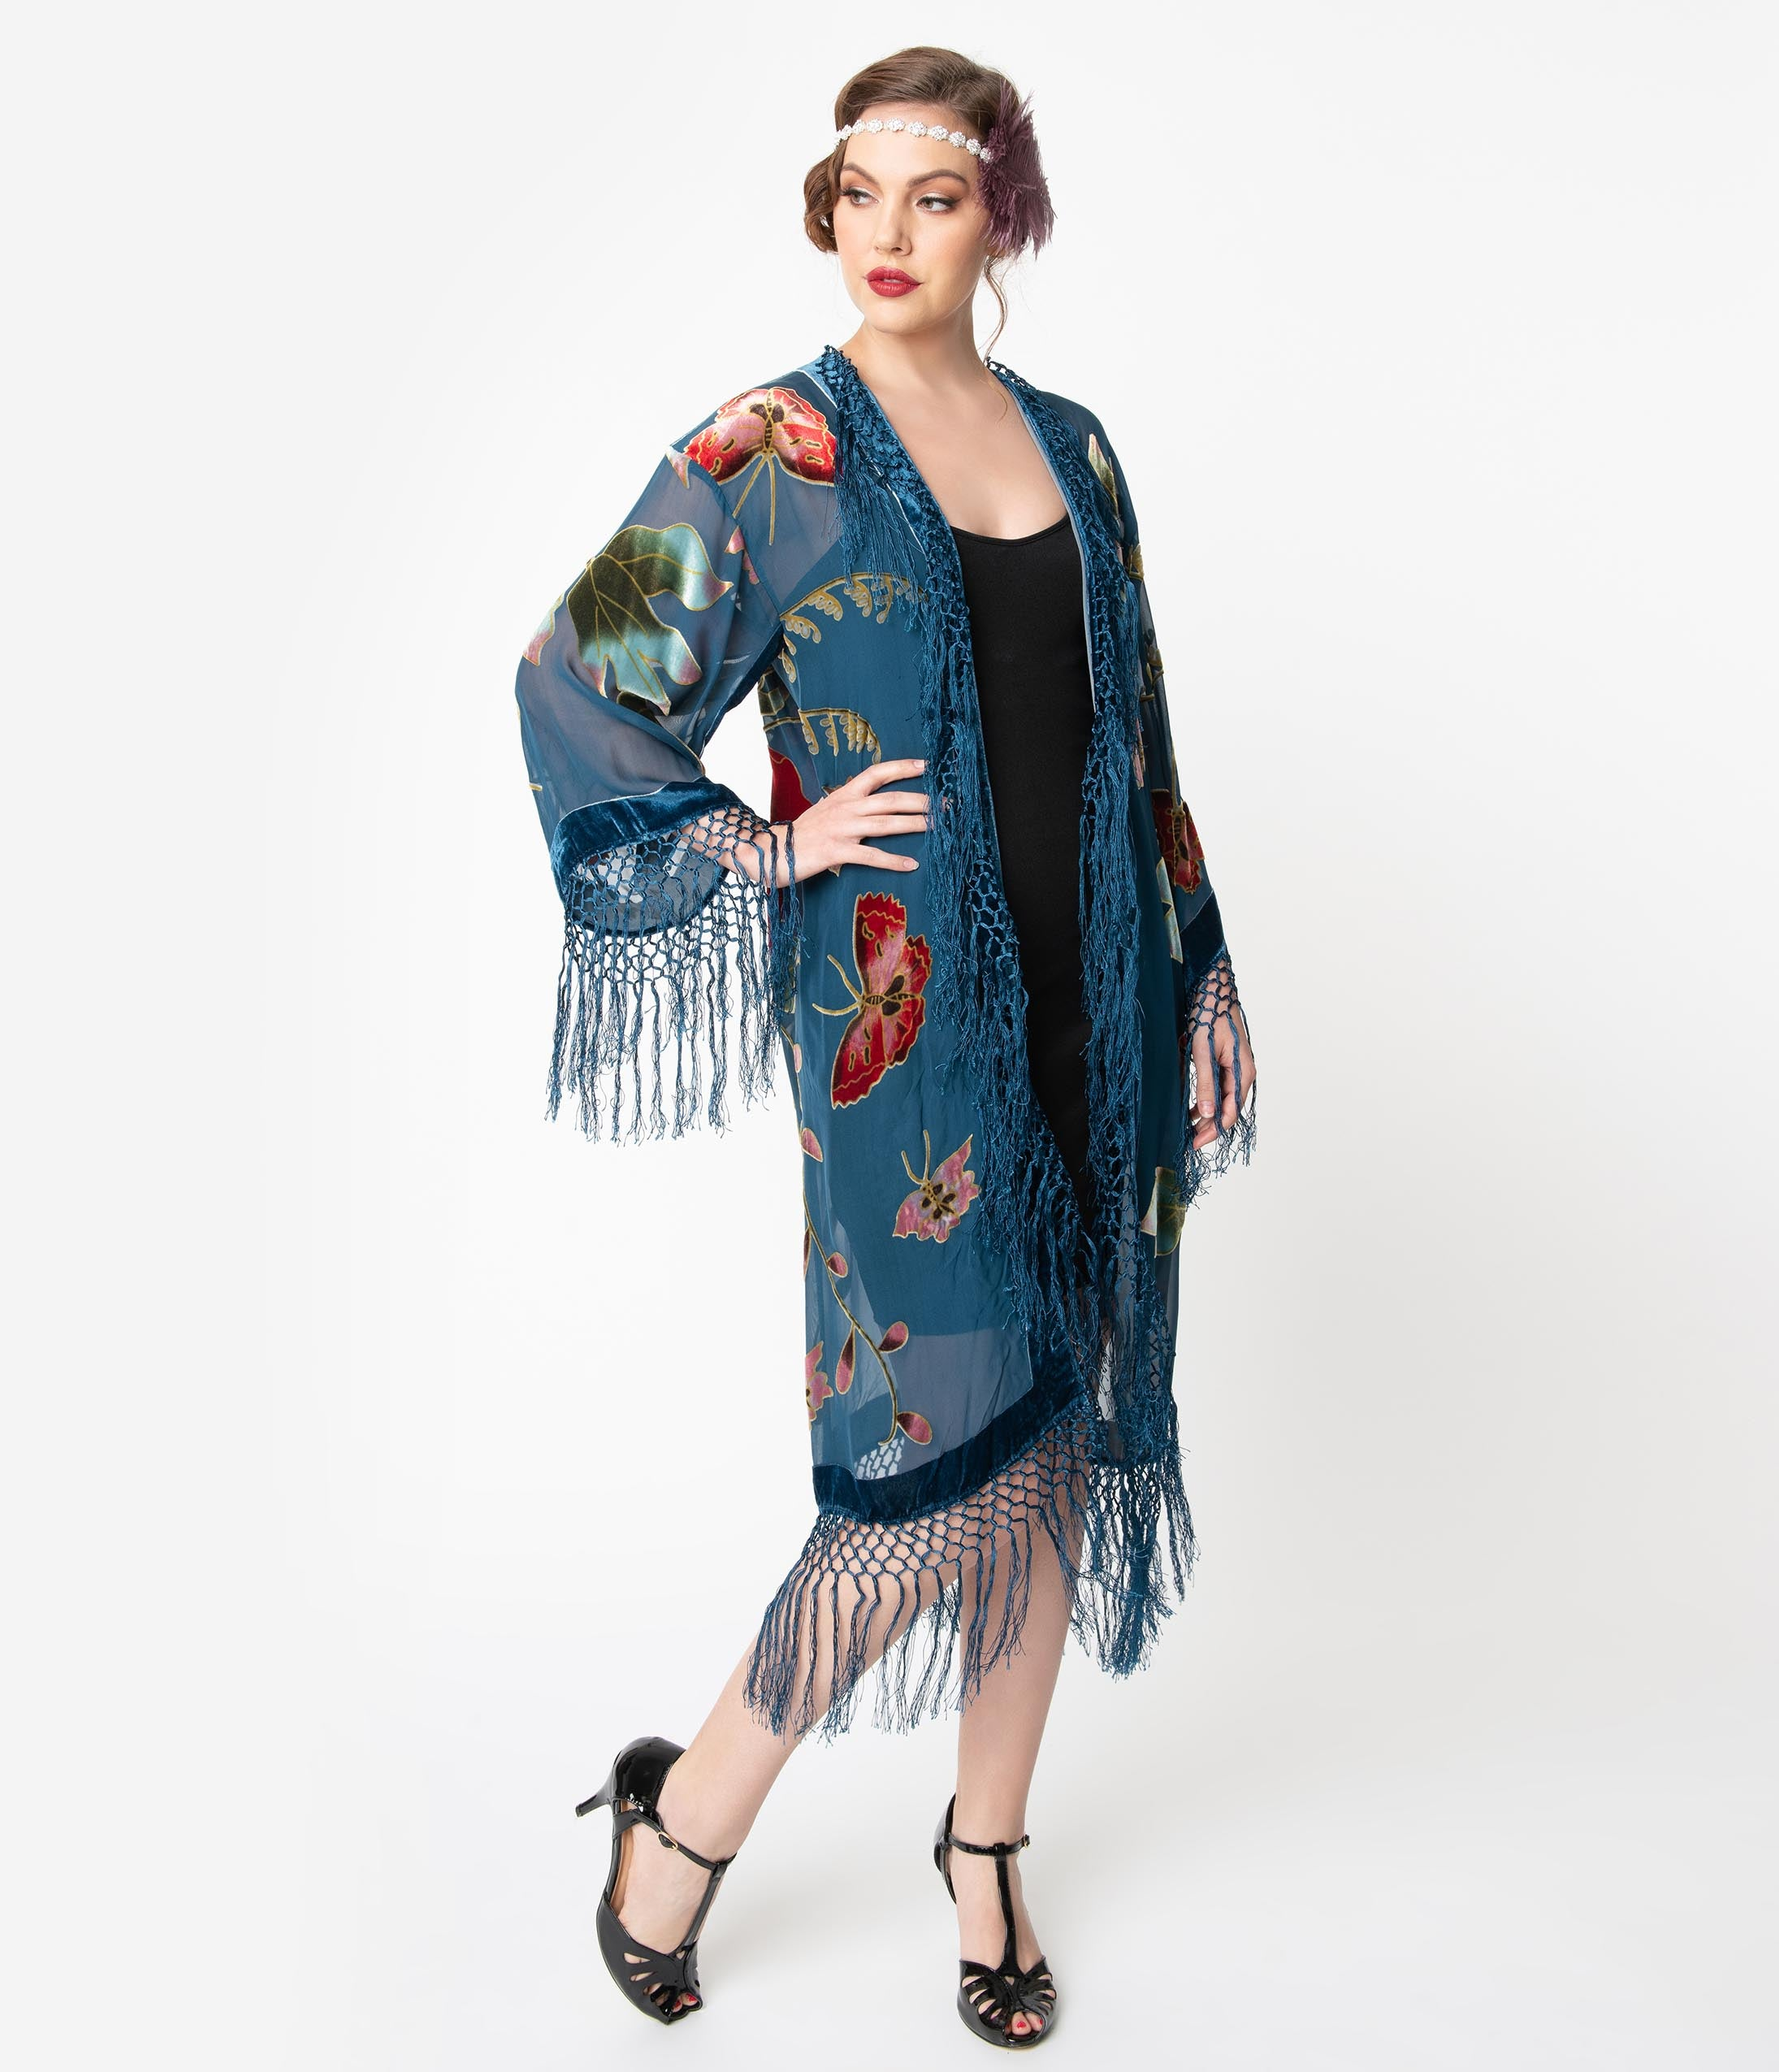 Vintage Coats & Jackets | Retro Coats and Jackets Vintage Style Teal Blue Floral Devore Velvet Fringe Flapper Coat $202.00 AT vintagedancer.com